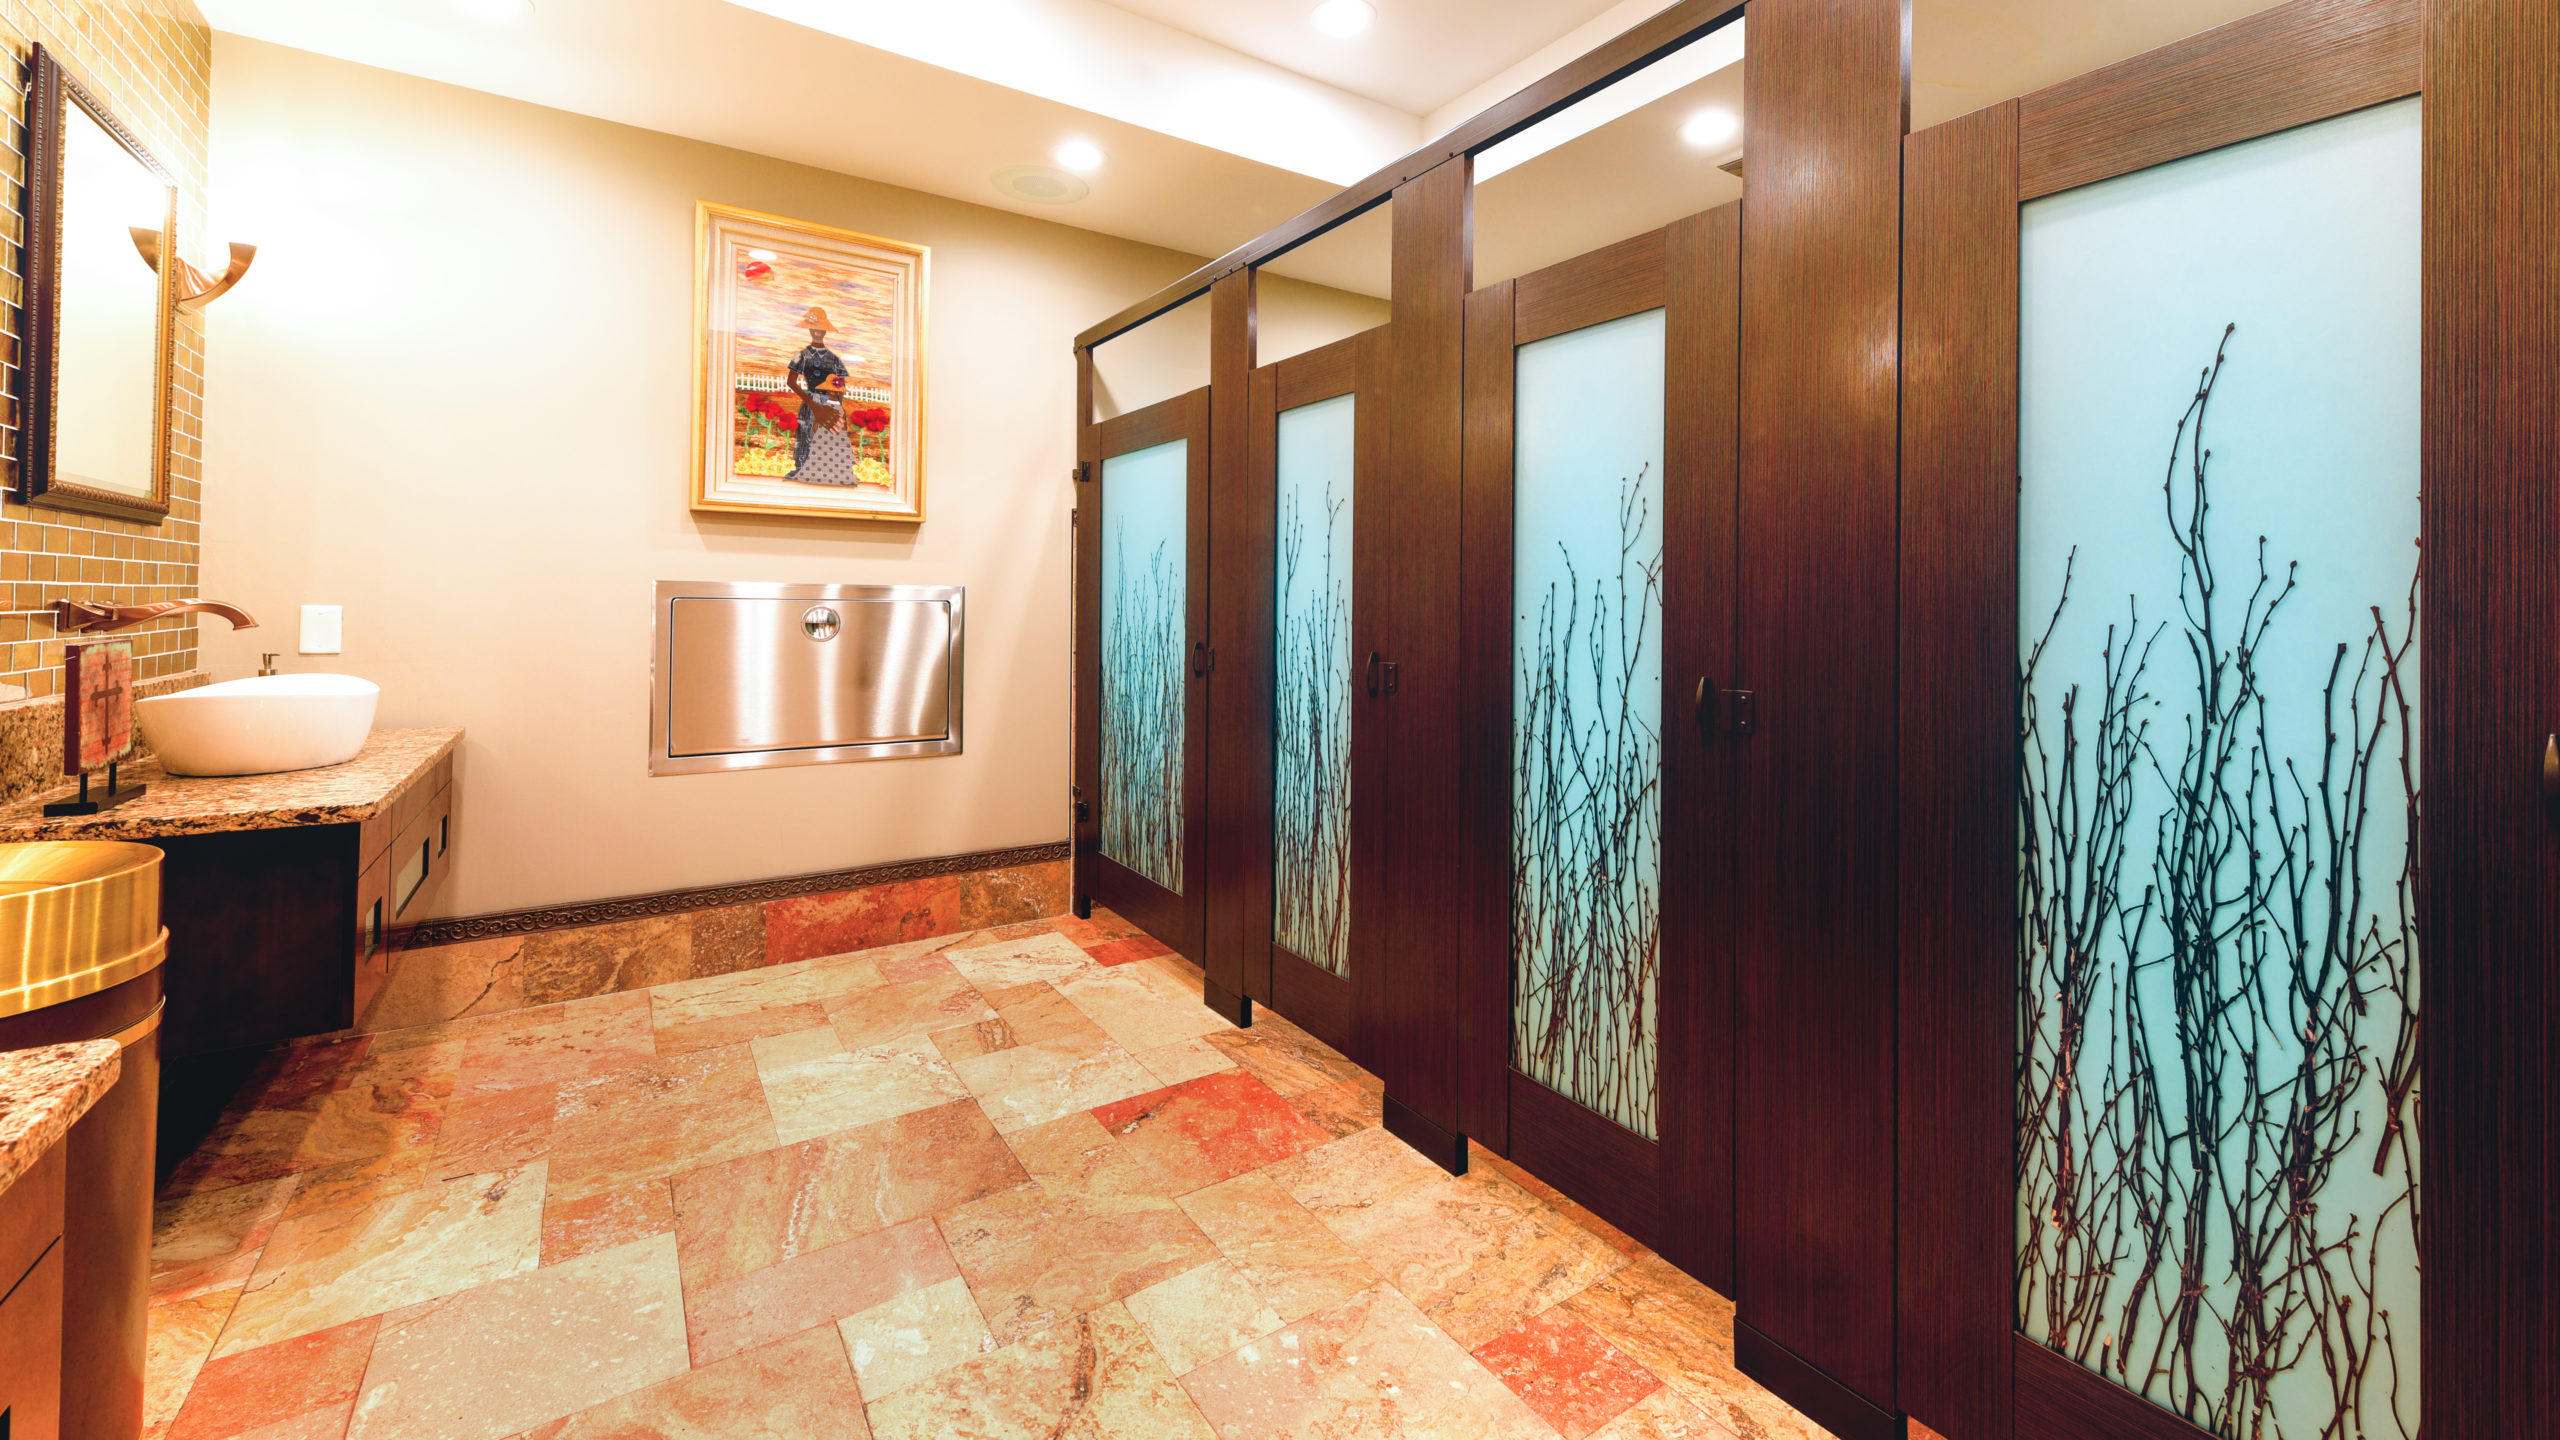 Glorious church restroom features brown laminate partitions and four doors with birch branch design on acrylic inserts. Bronzed fixtures and cross.